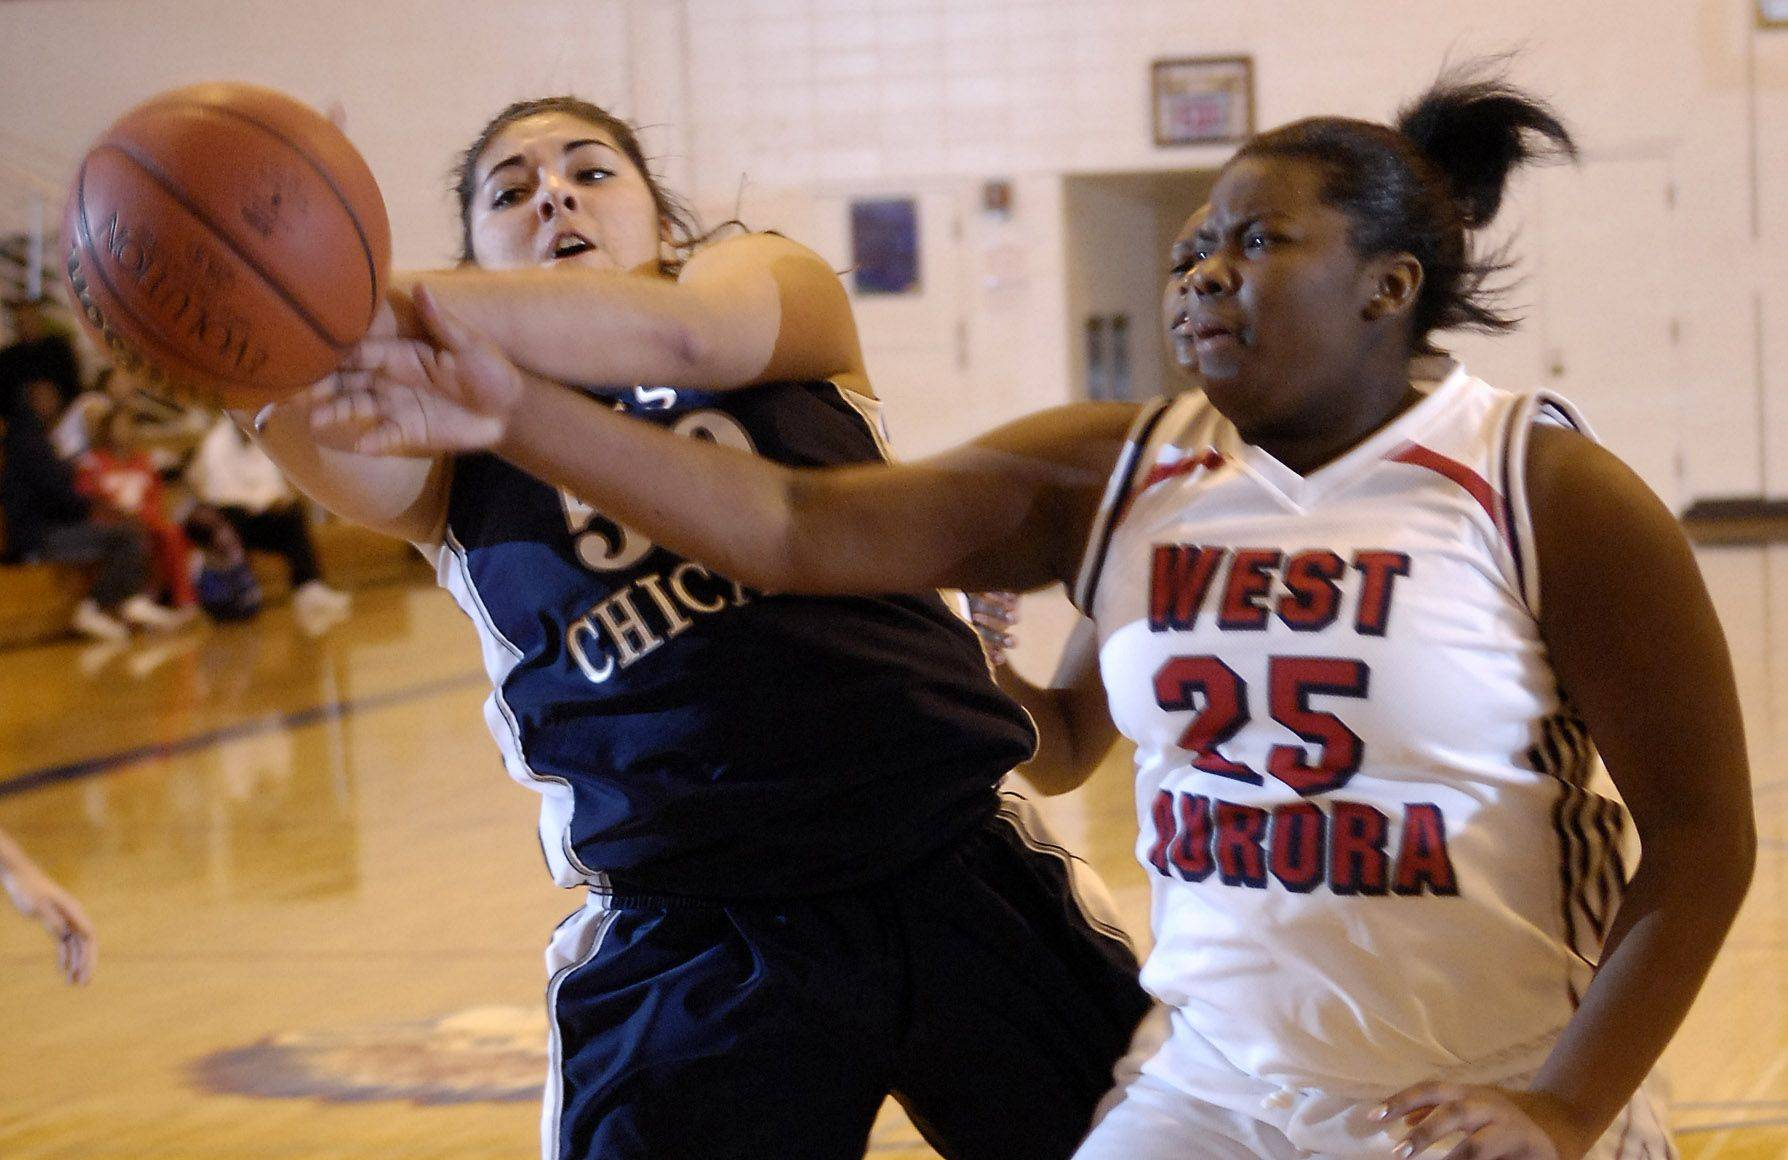 West Chicago's Amber Del Rio and West Aurora's Jonica Walker battle for a rebound .